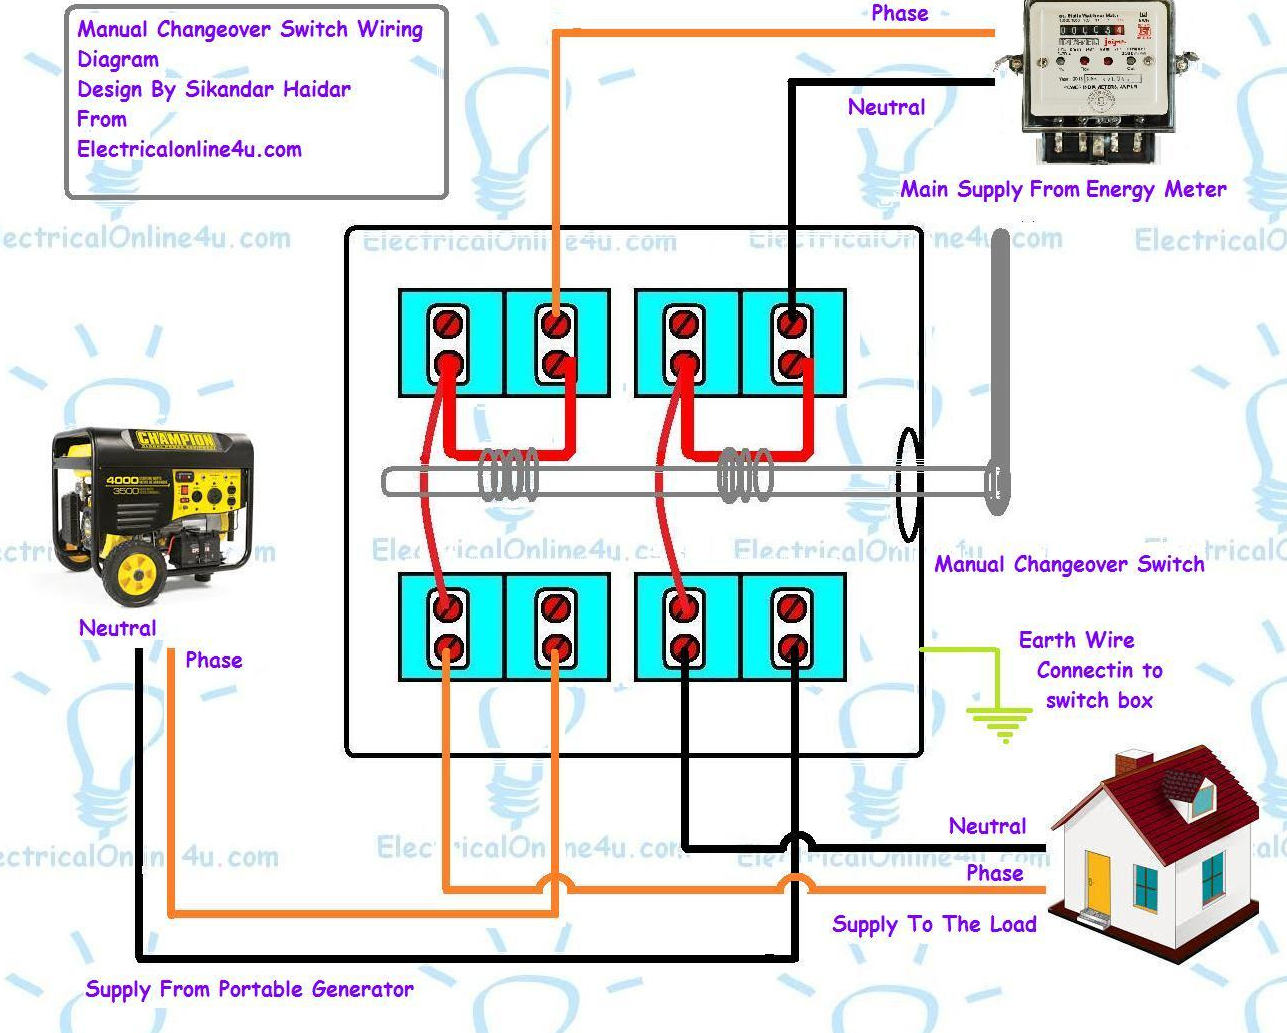 Manual changeover switch wiring diagram for portable generator | m in 2019 | Transfer switch